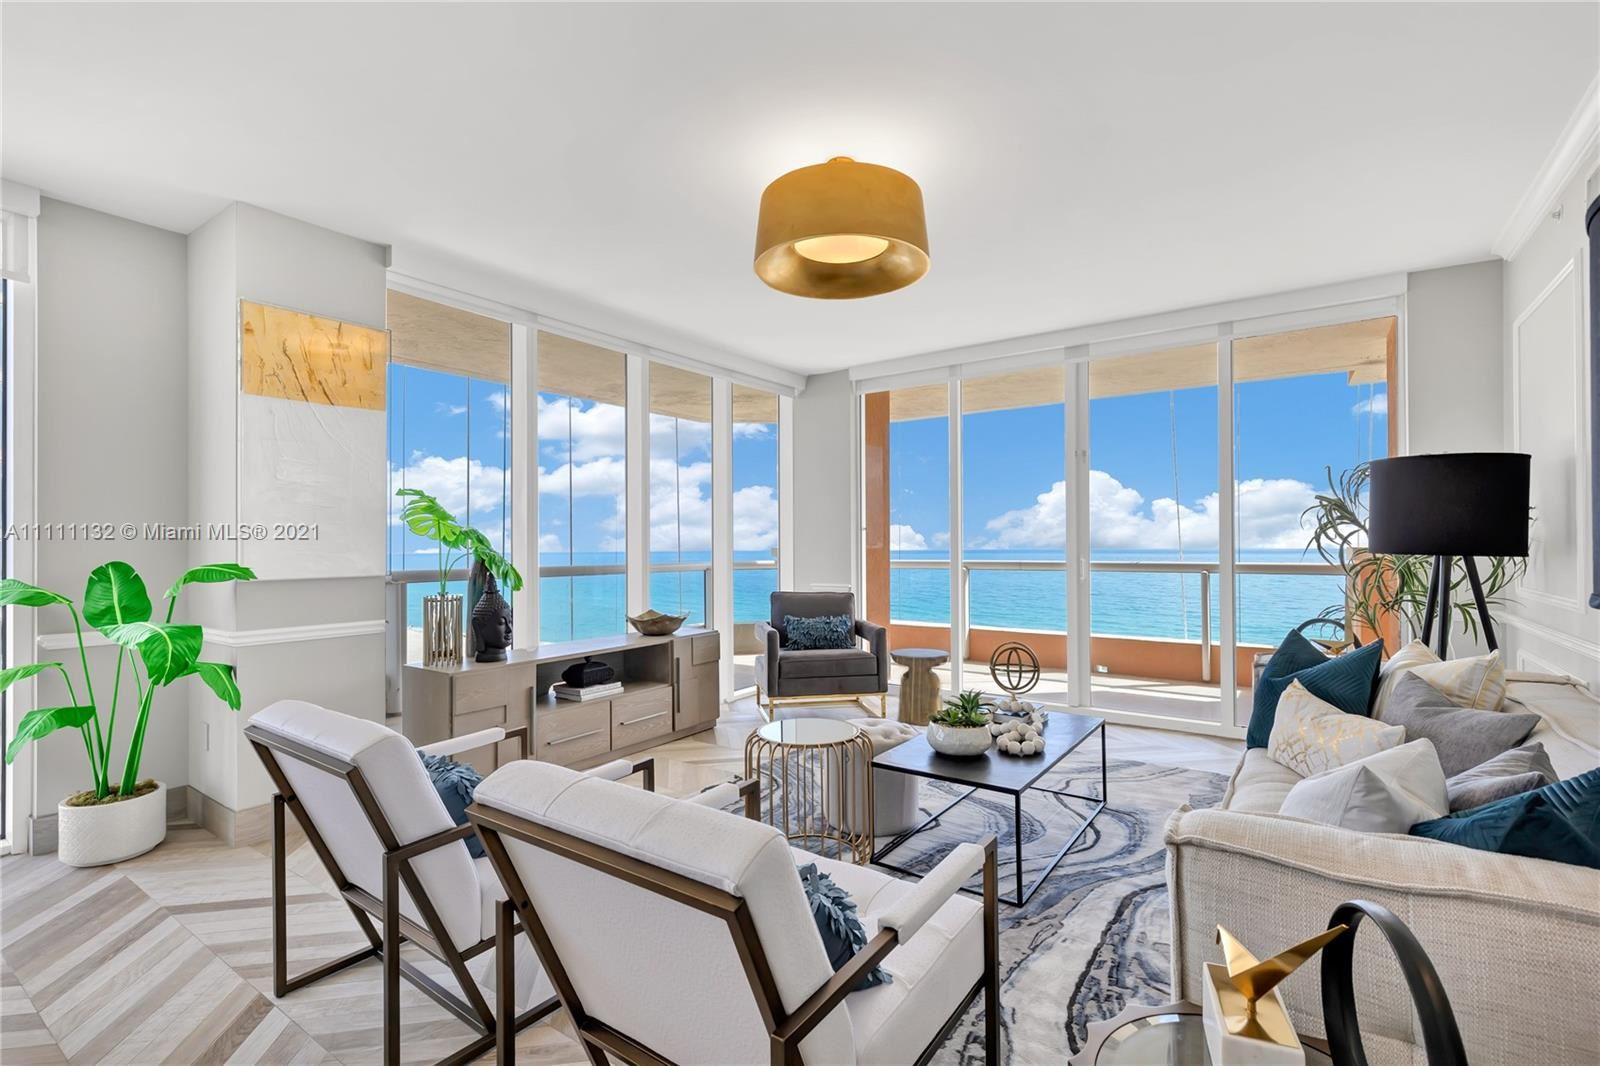 17875 Collins Ave #901, Sunny Isles, FL 33160 - #: A11111132